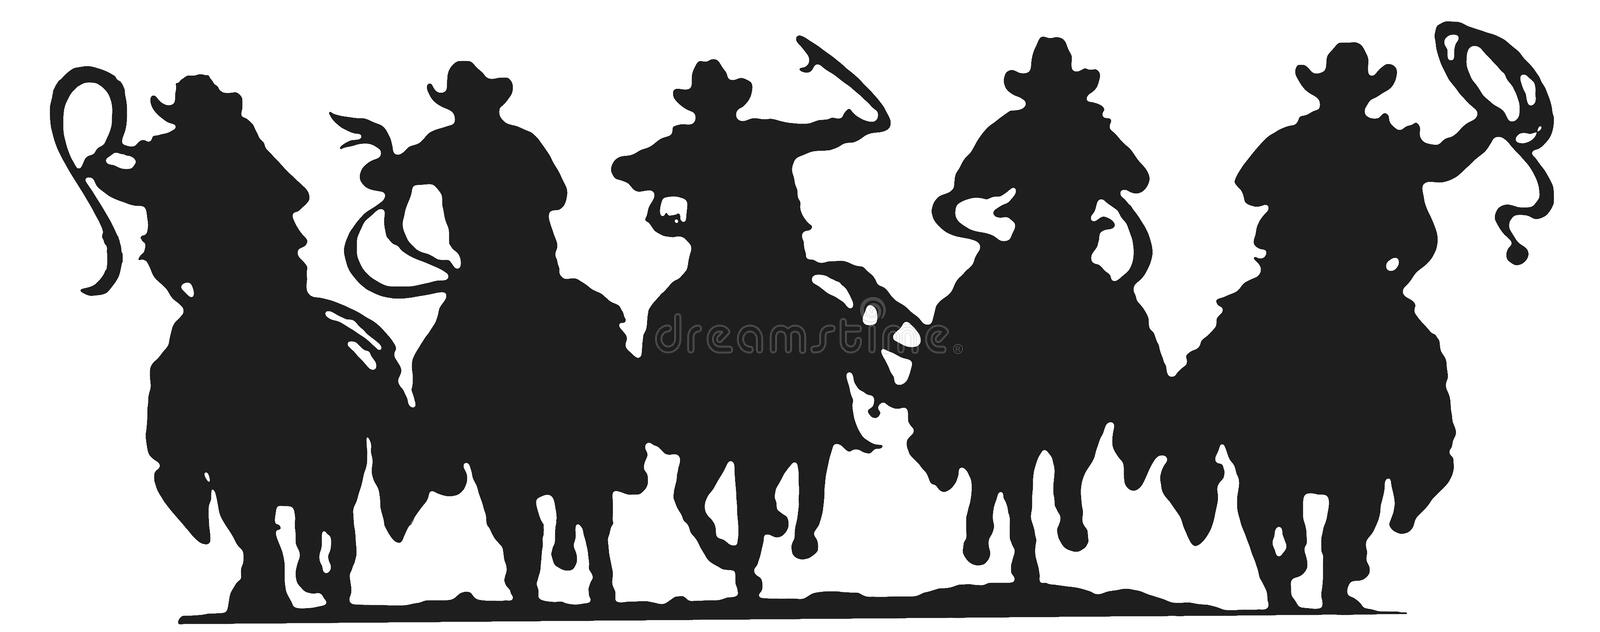 Silhueta dos cowboys foto de stock royalty free